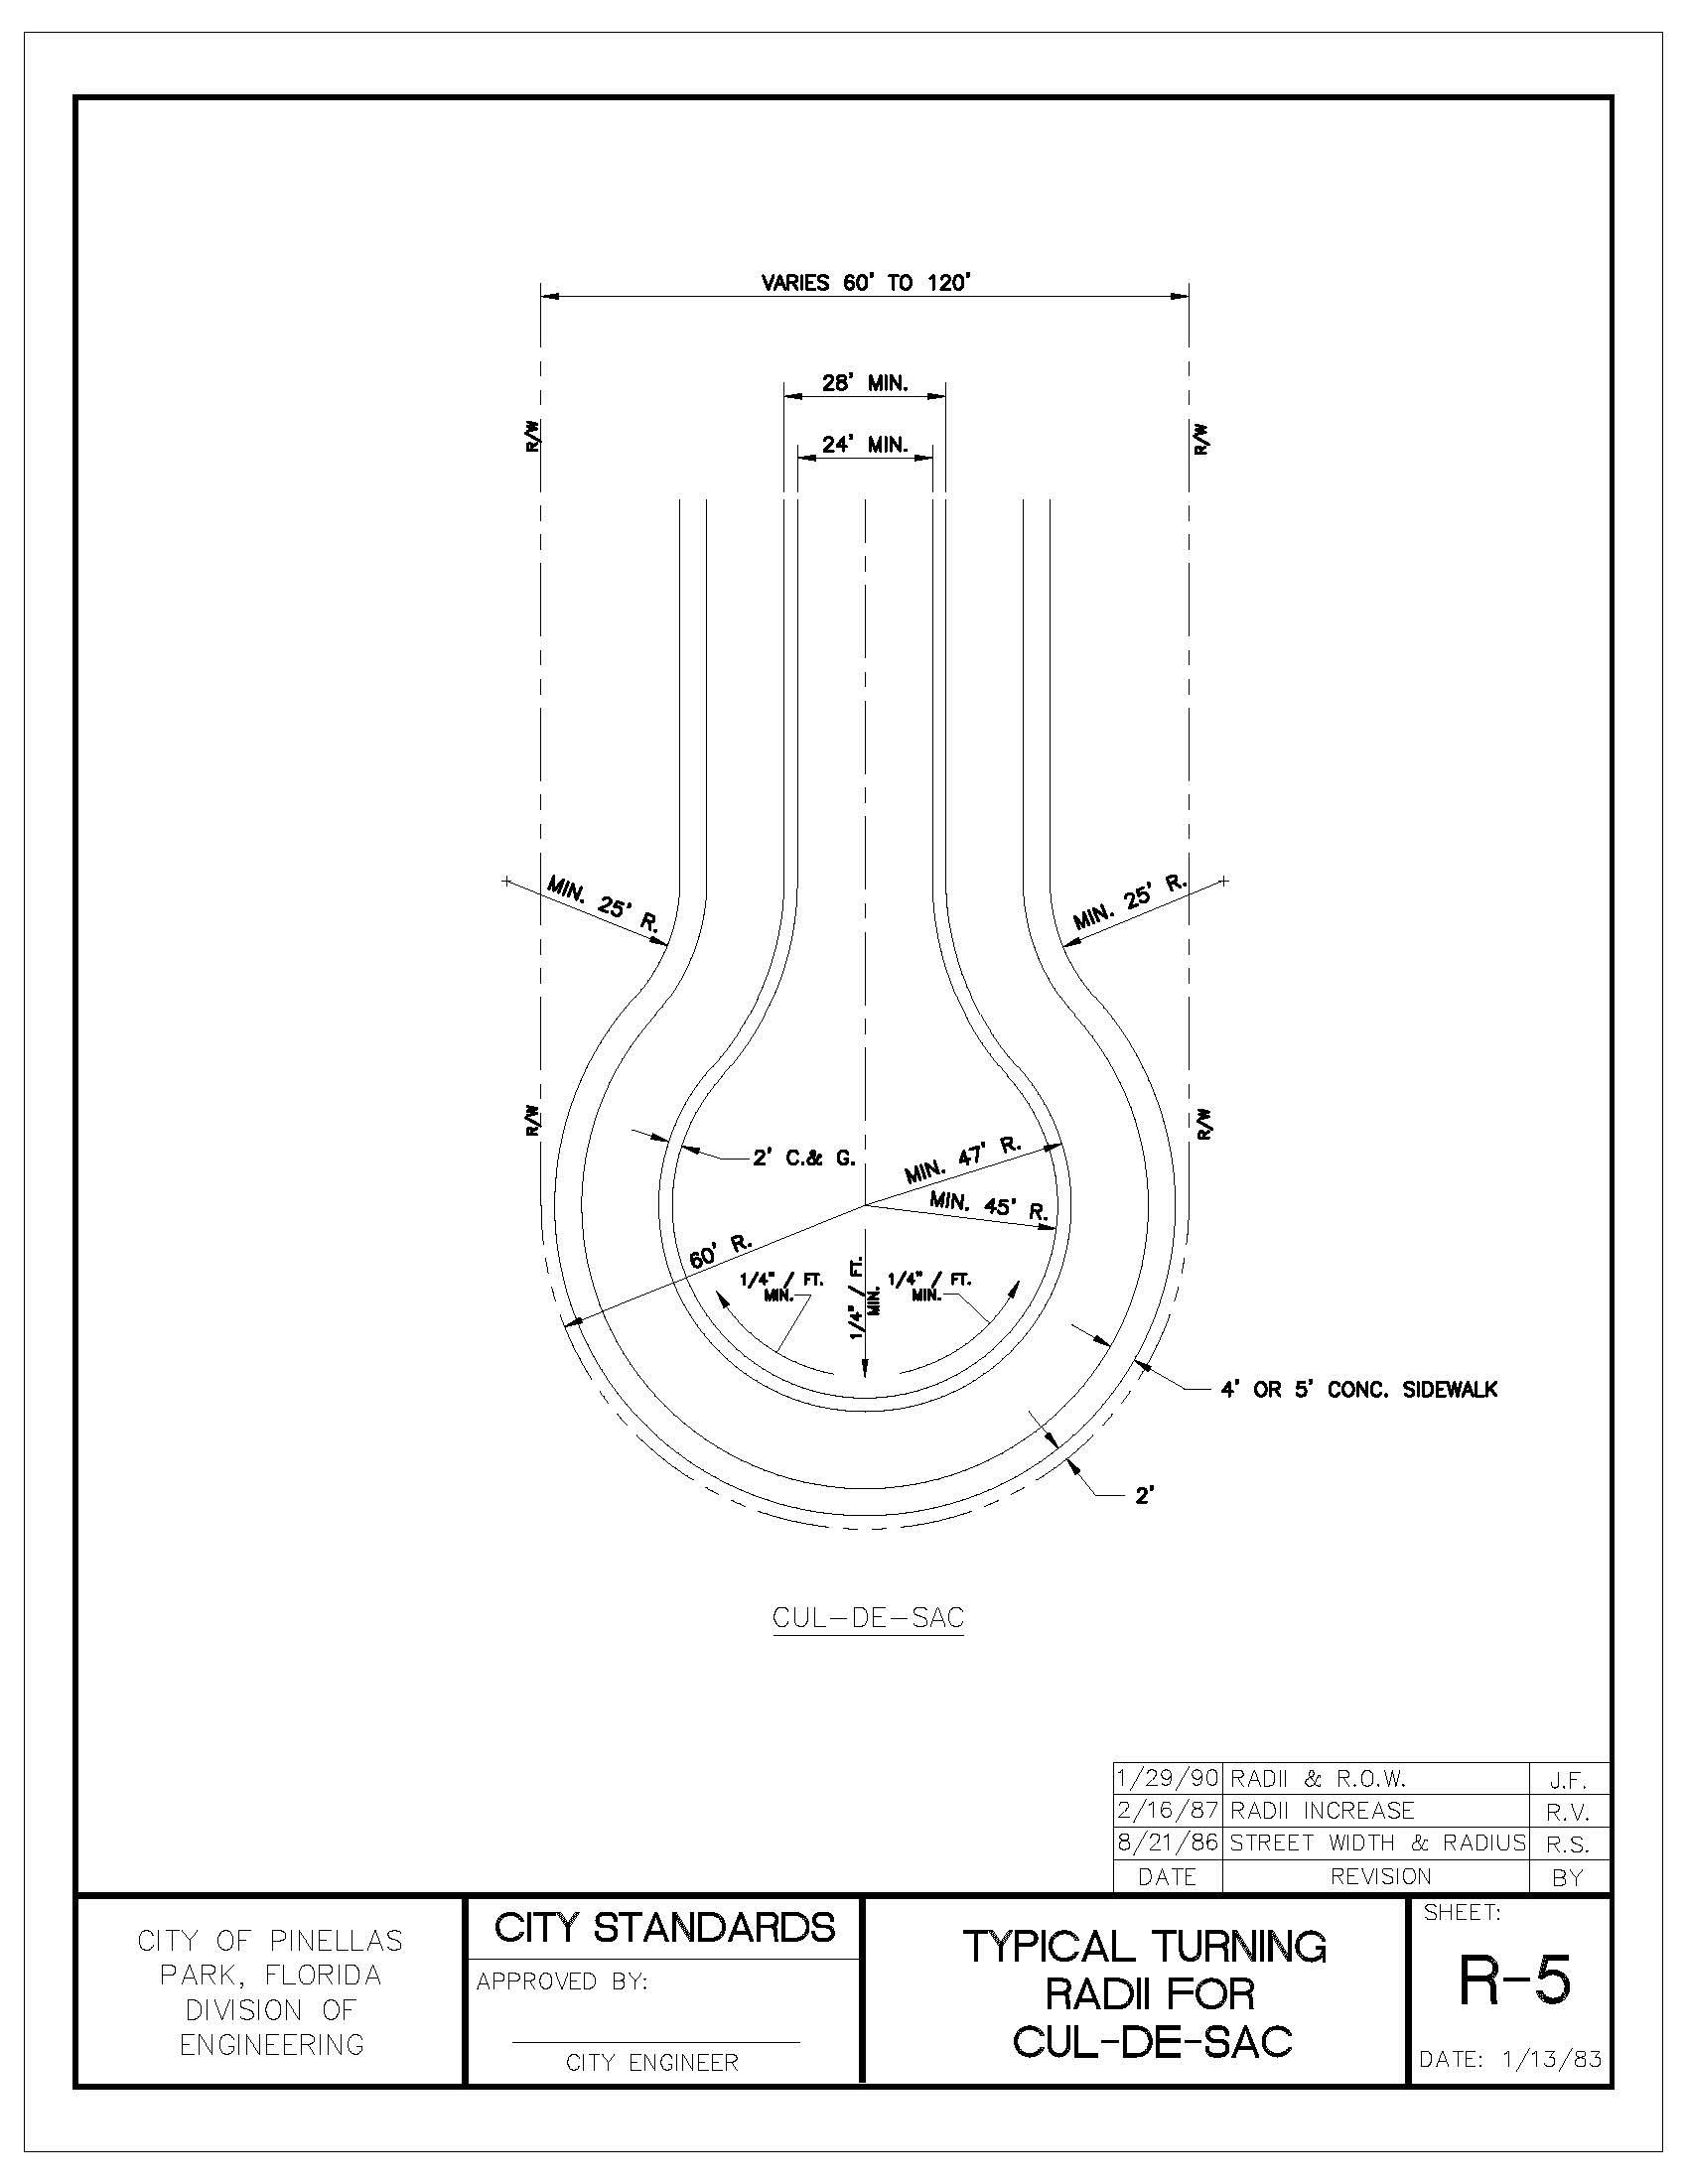 Engineering Manual v5_201908121127291138_Page_042 typical turning radii for cul de sac